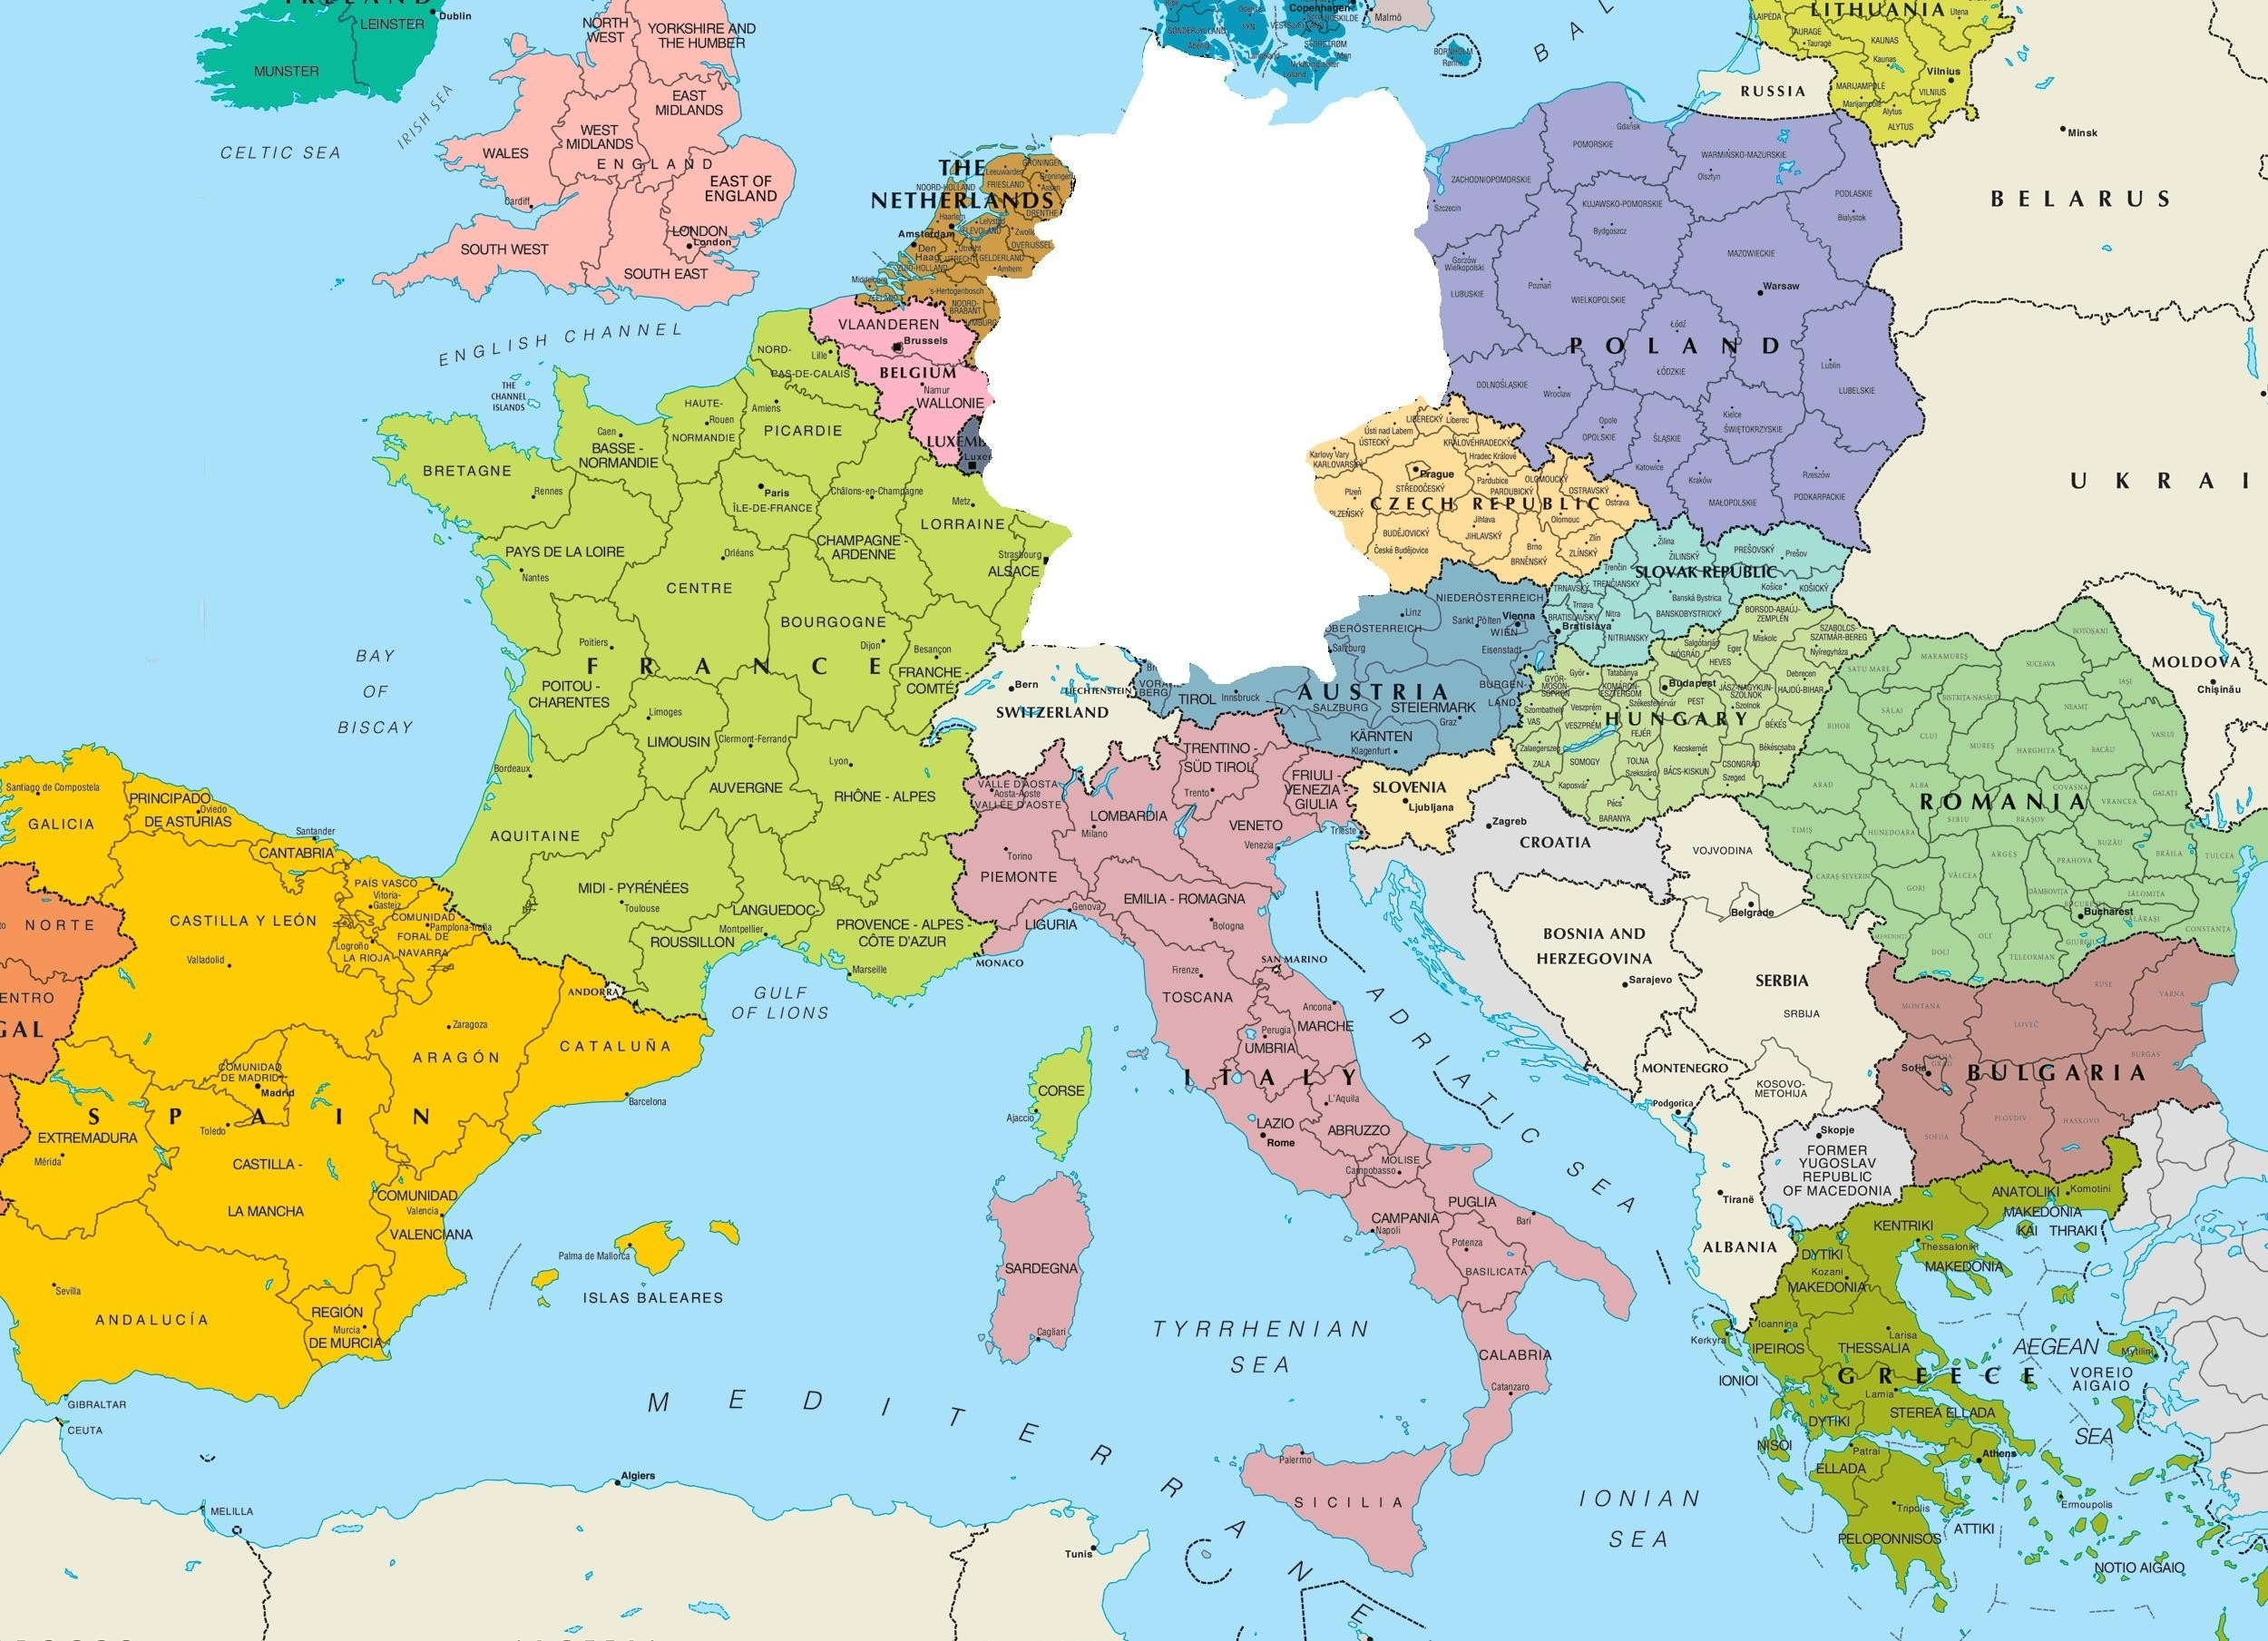 Germany On Europe Map K9Cev2O | D1Softball in Germany Location In Europe Map